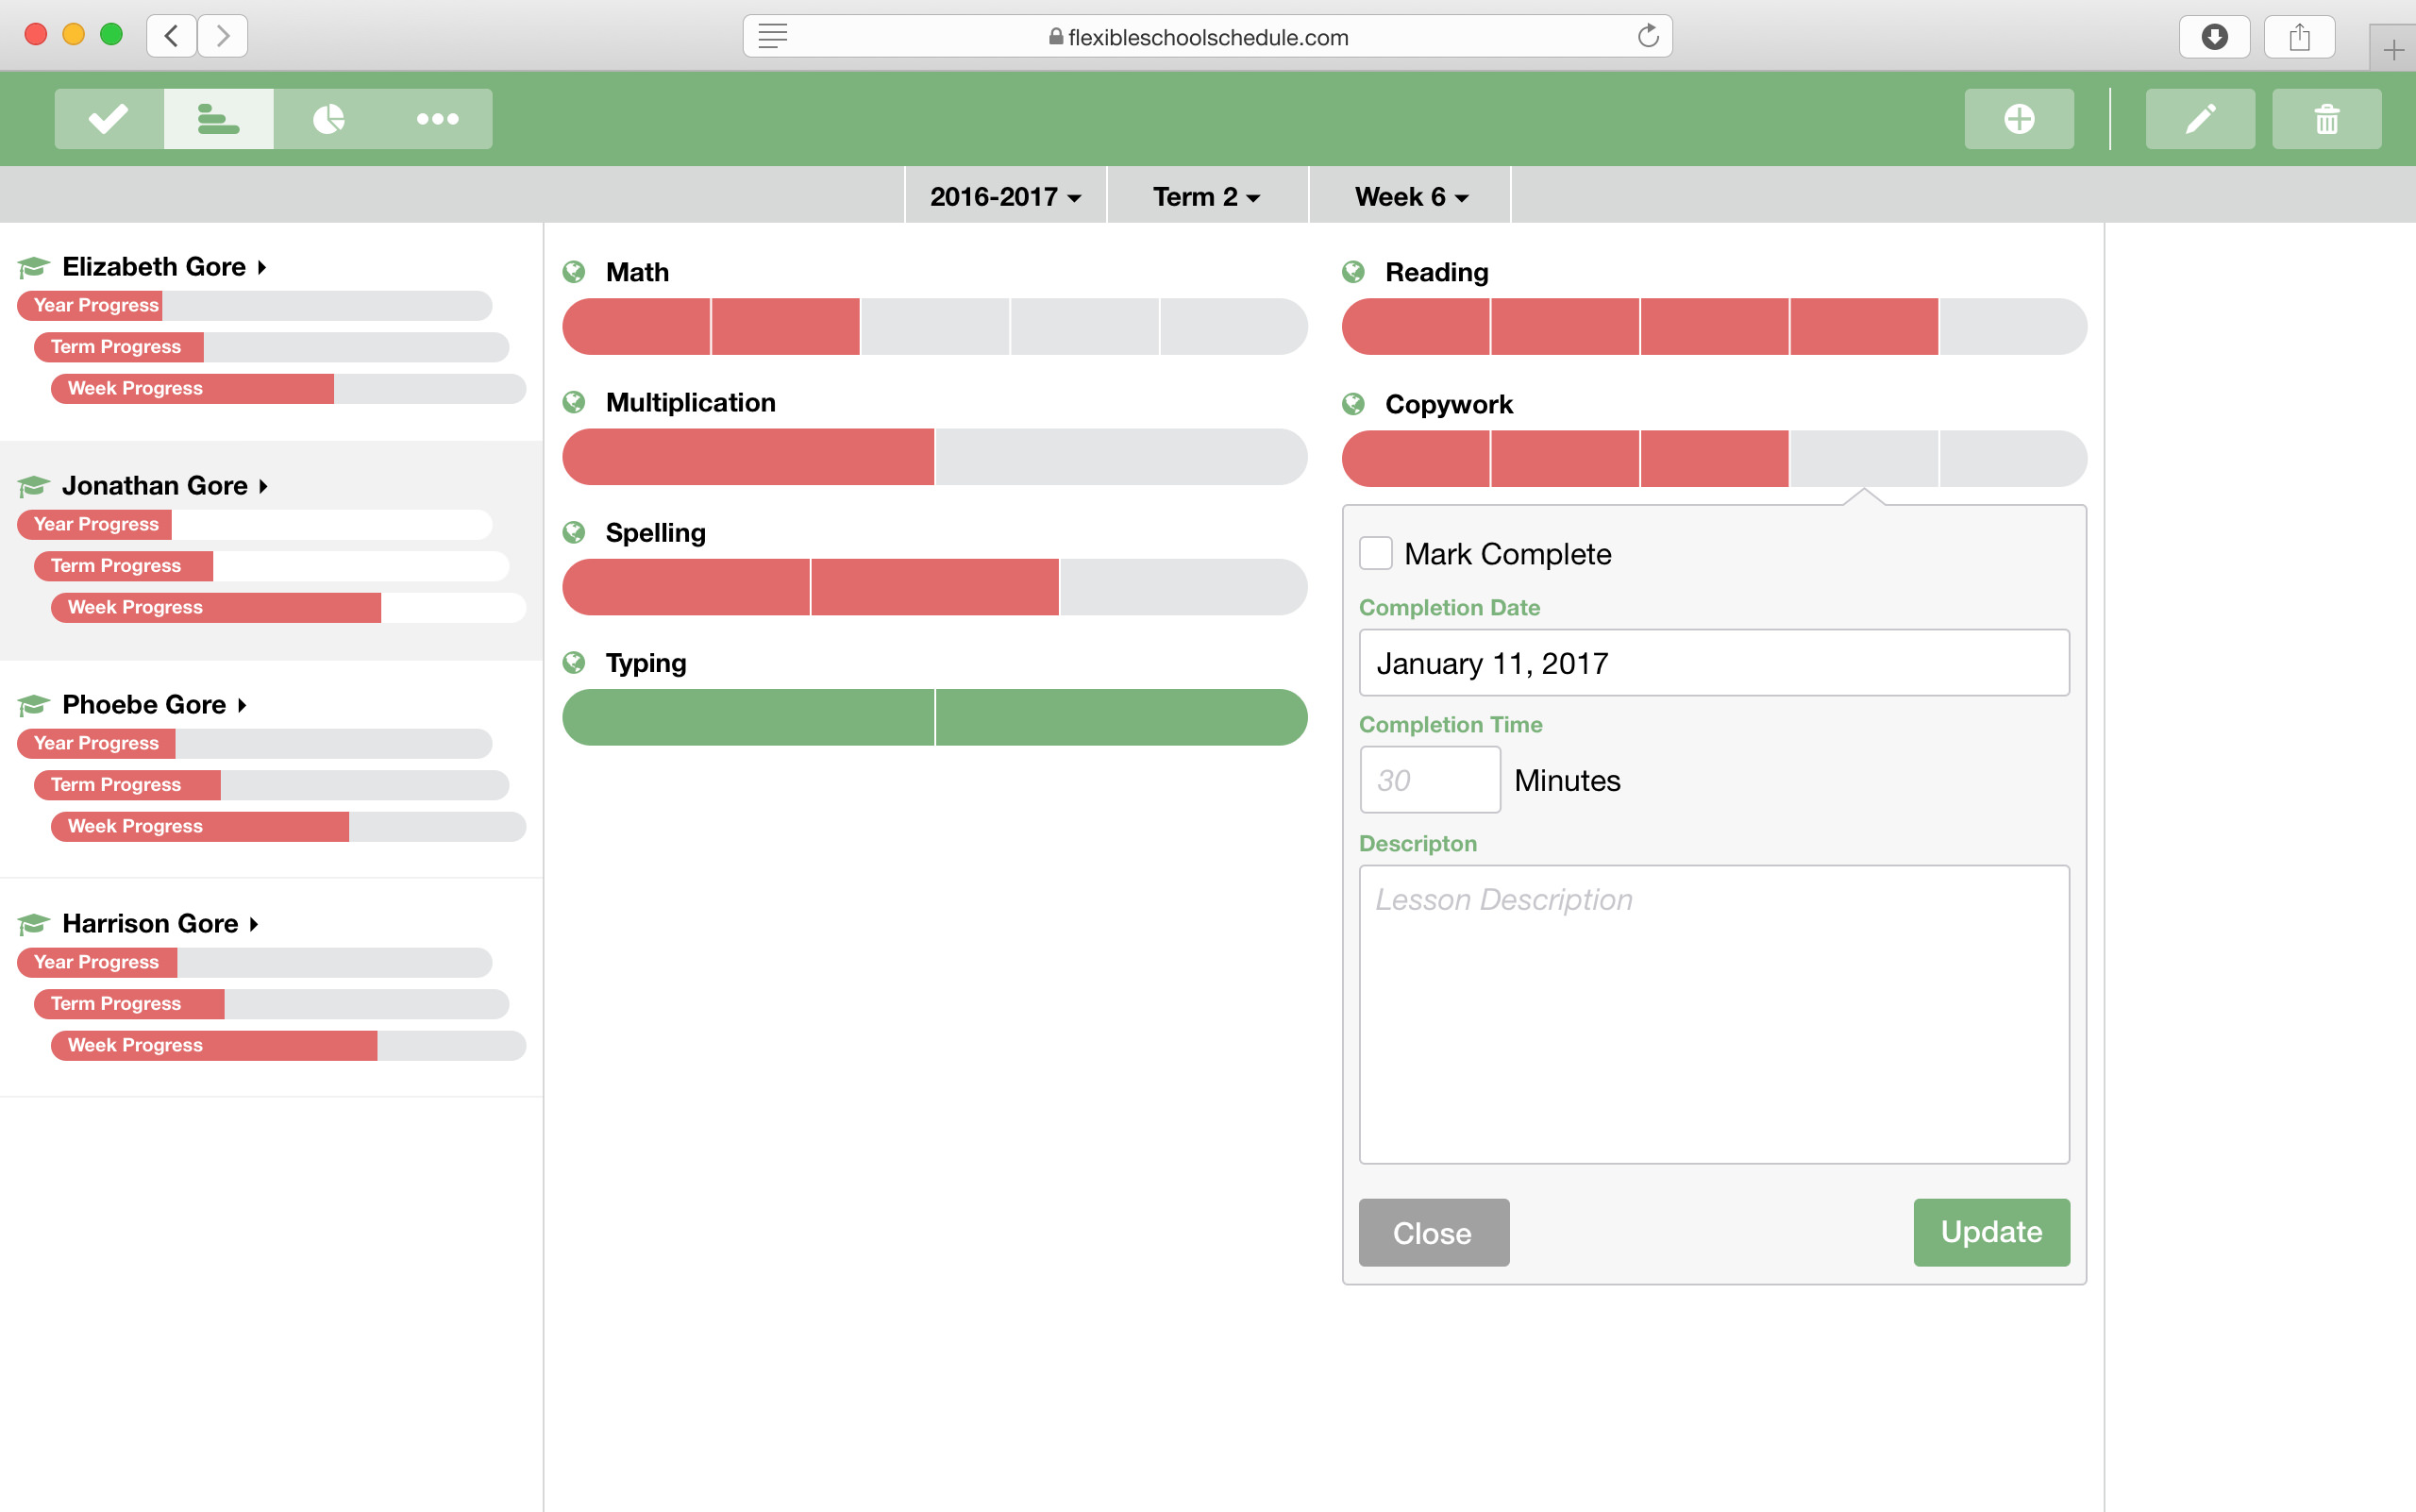 Flexible School Schedule Interface